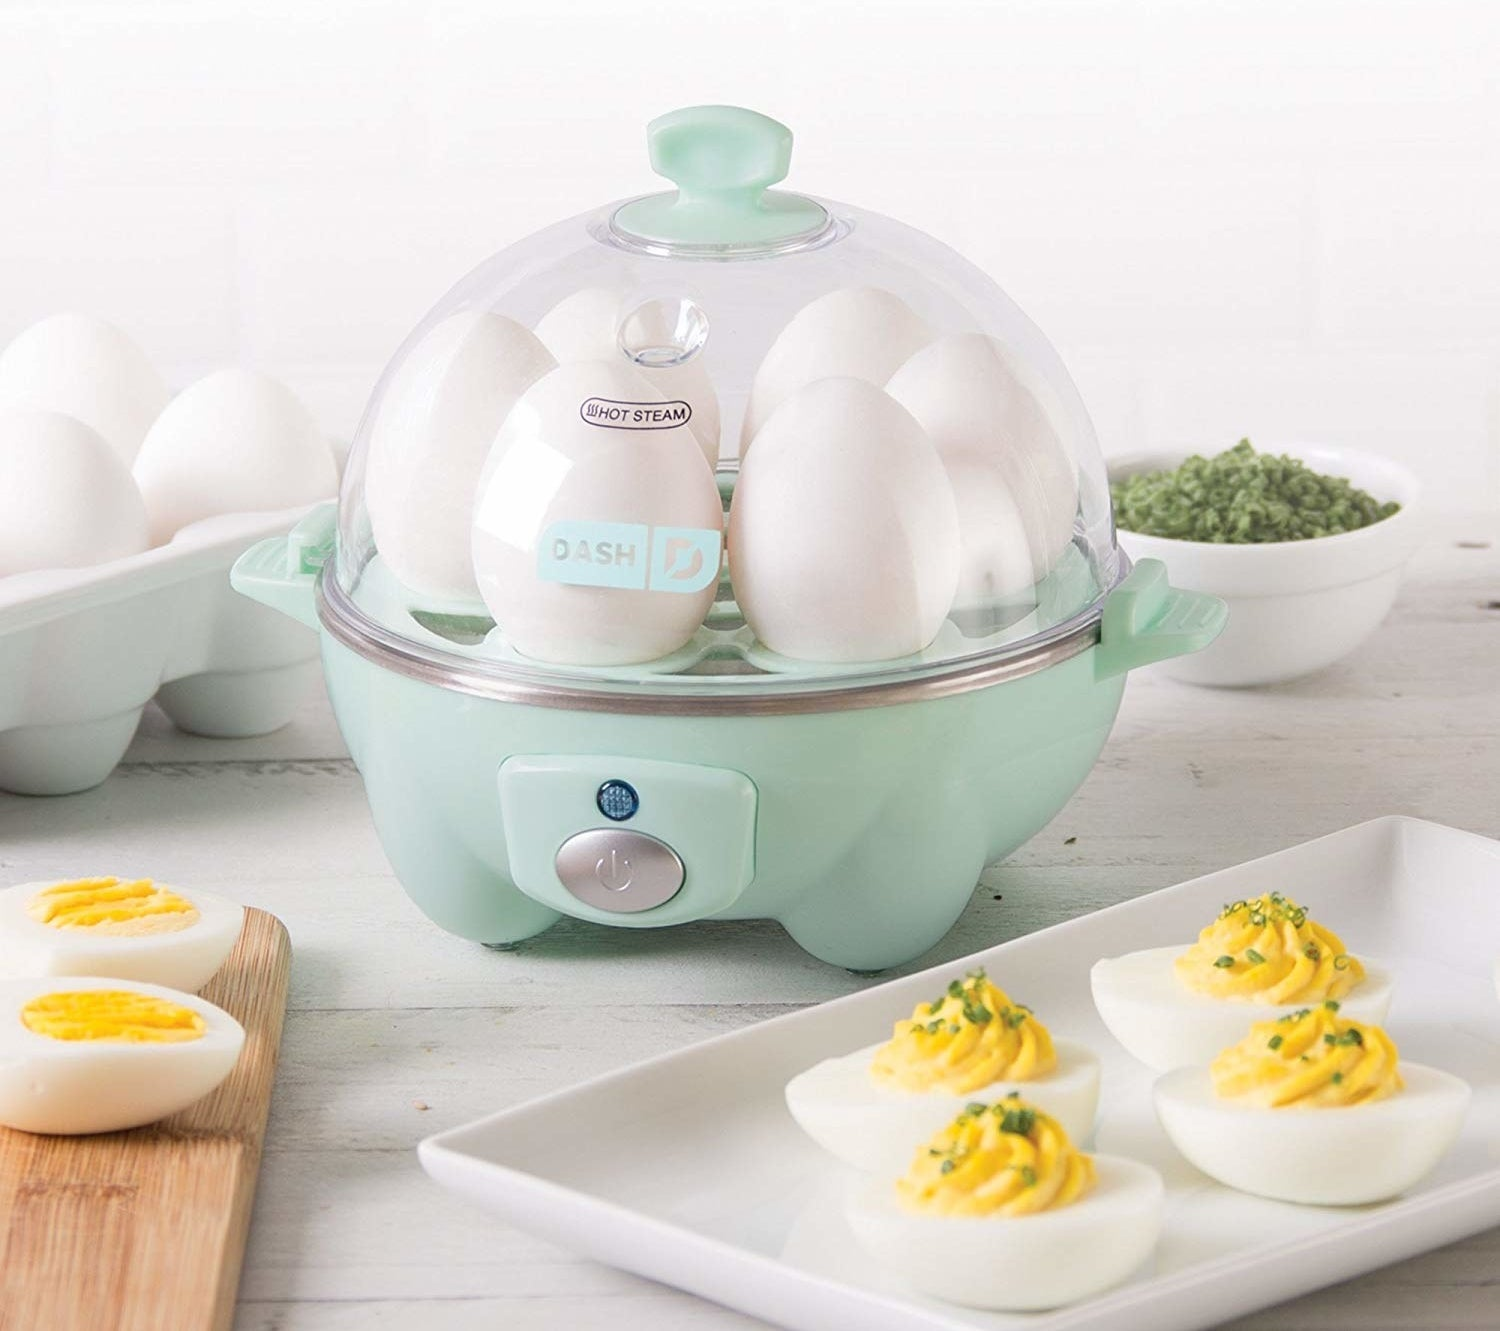 Dash rapid egg cooker placed on counter with deviled eggs on plate